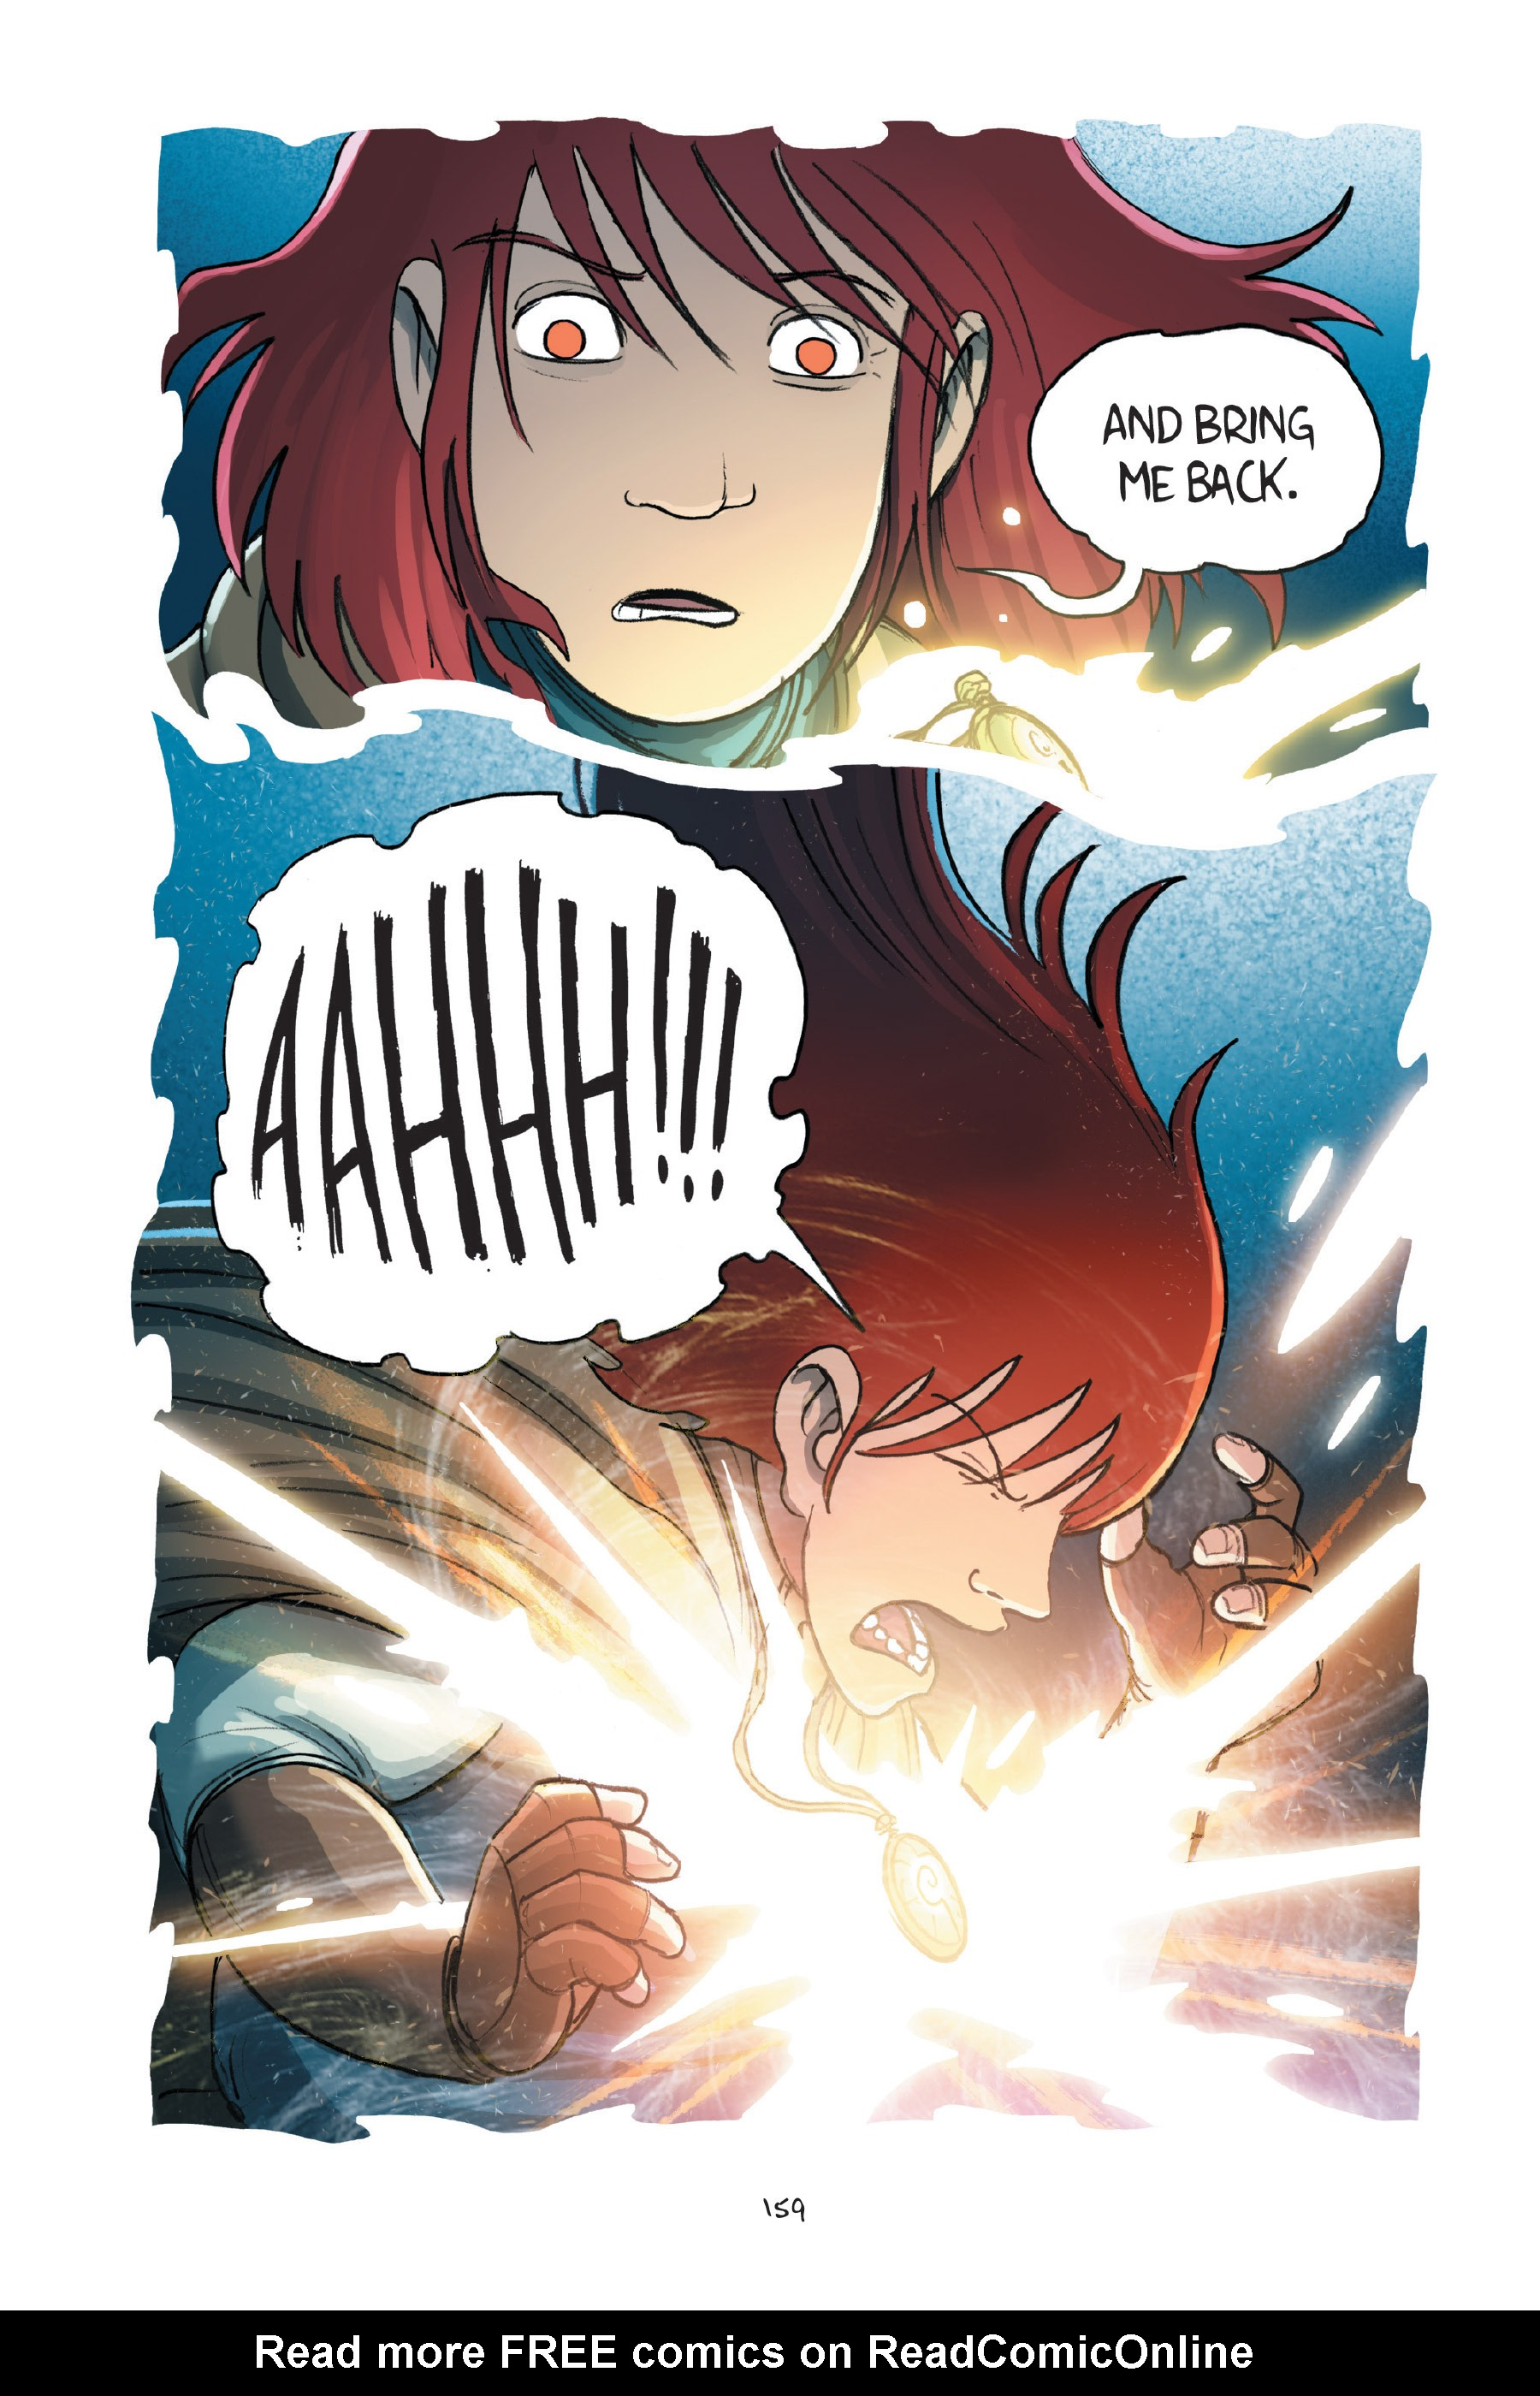 Read online Amulet comic -  Issue #7 - 159